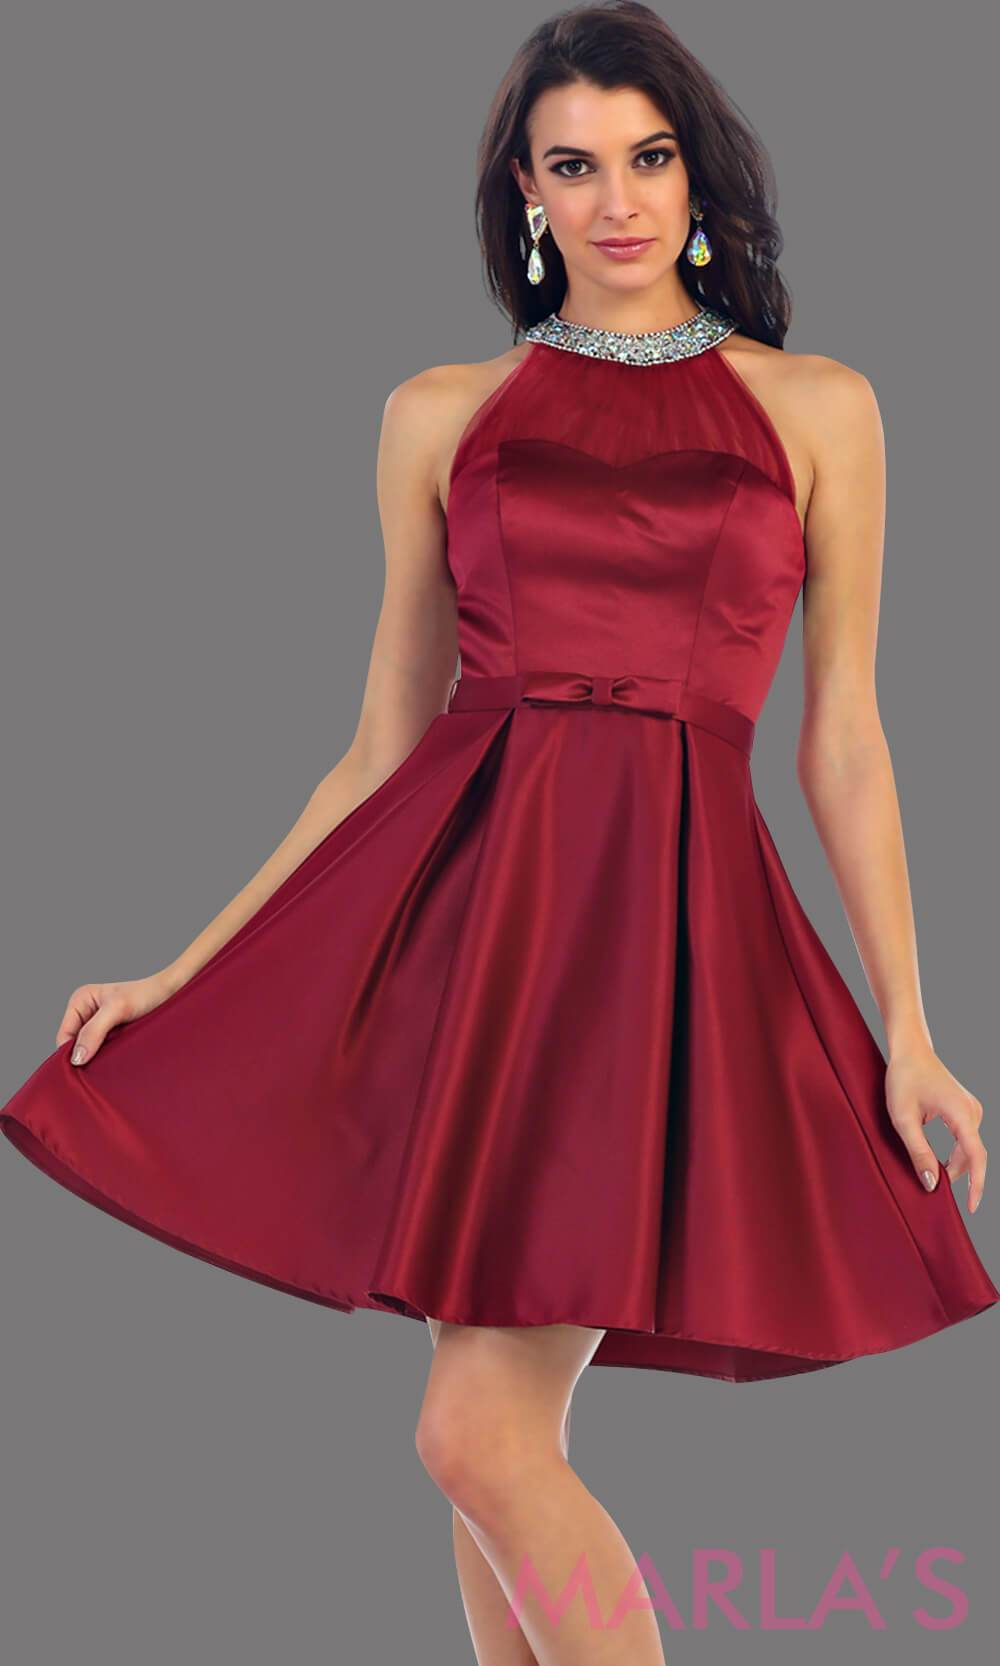 1474-Short high neck taffeta burgundy grade 8 grad dress with rhinestone neckline. Perfect as a dark red confirmation dress, wedding guest dress, graduation dress, short prom dress, or damas dress. Available in plus sizes